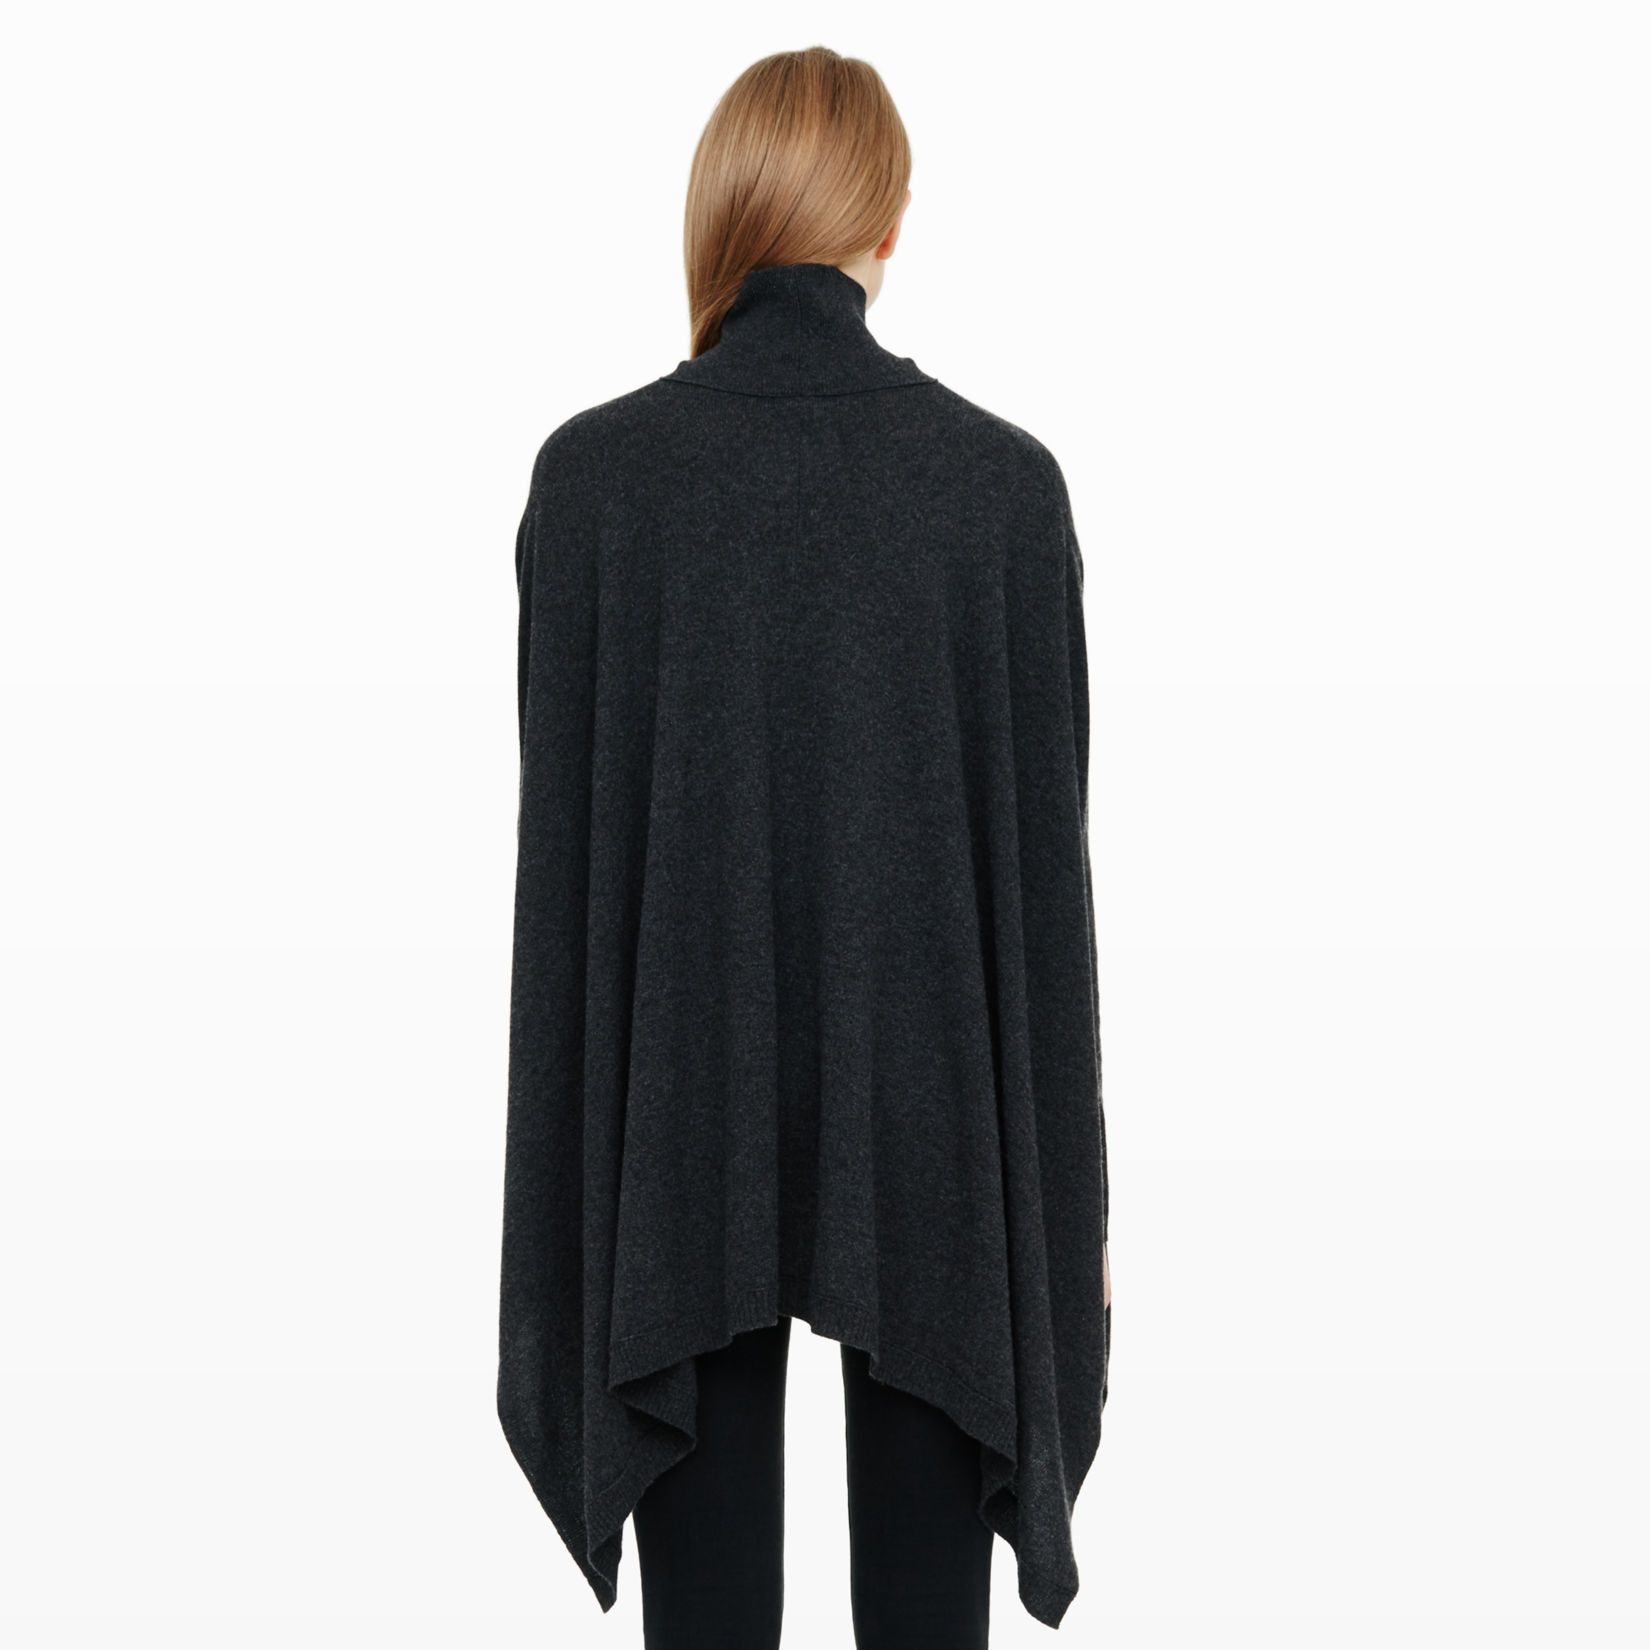 Lyda Cashmere Poncho - Turtlenecks Sweaters at Club Monaco